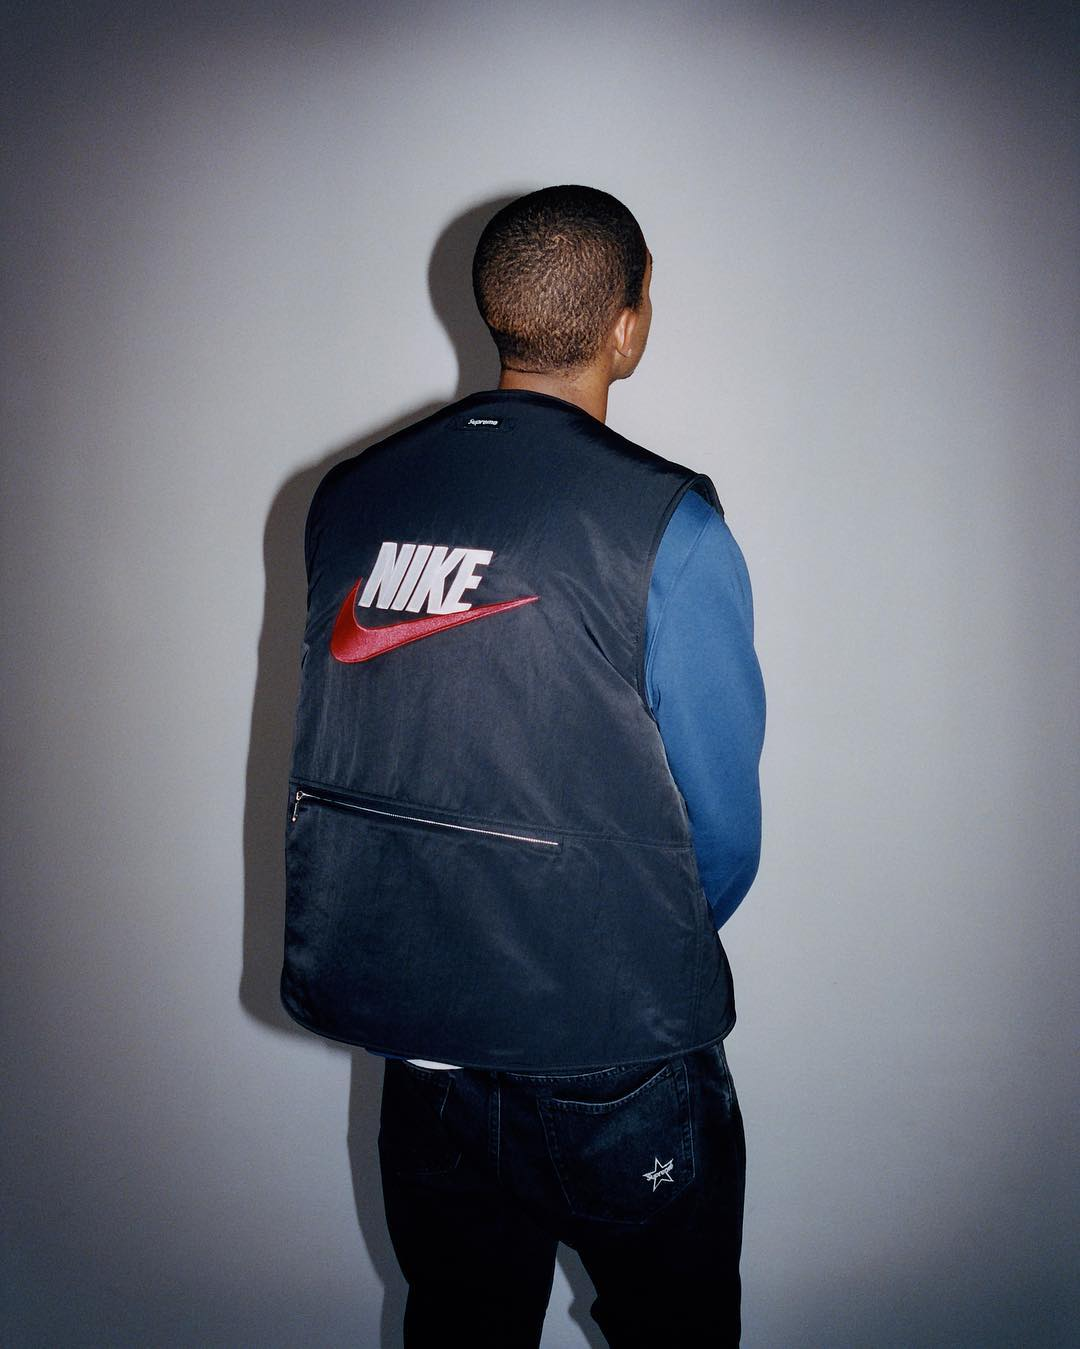 supreme-nike-18aw-2nd-delivery-collaboration-release-20180929-week6-lookbook